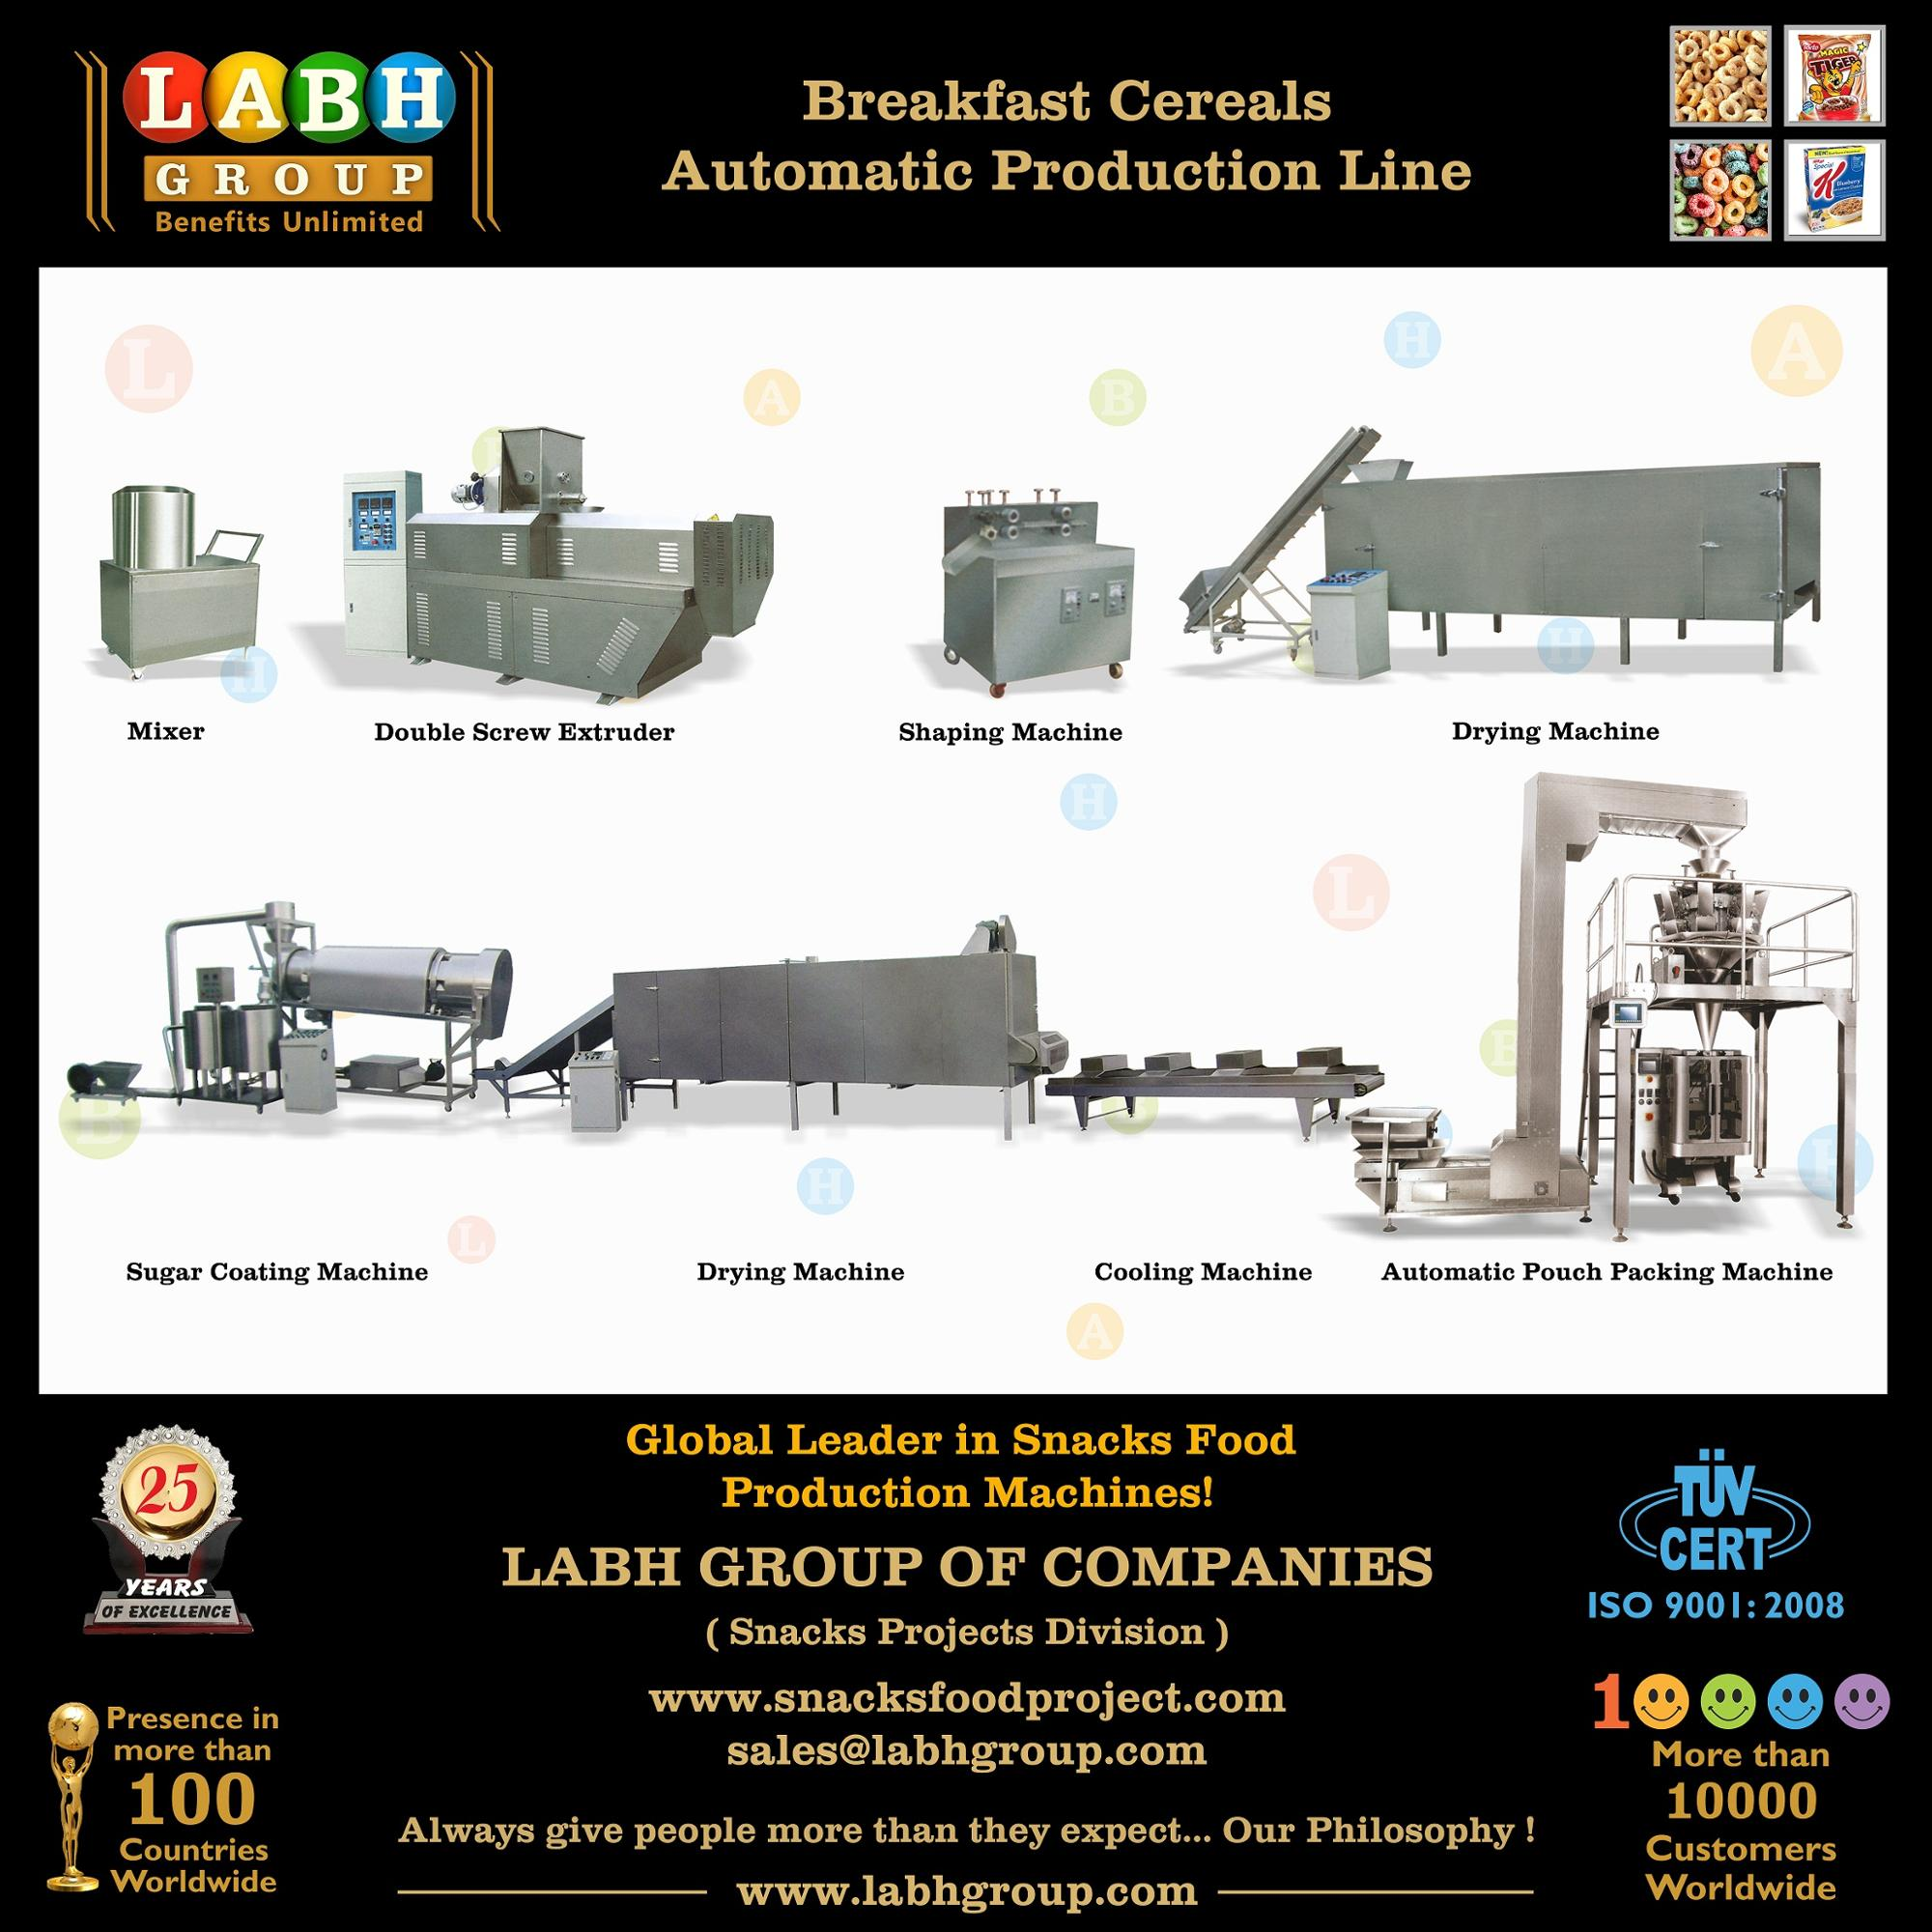 Labh Brand Breakfast Cereals Manufacturing Line Machines